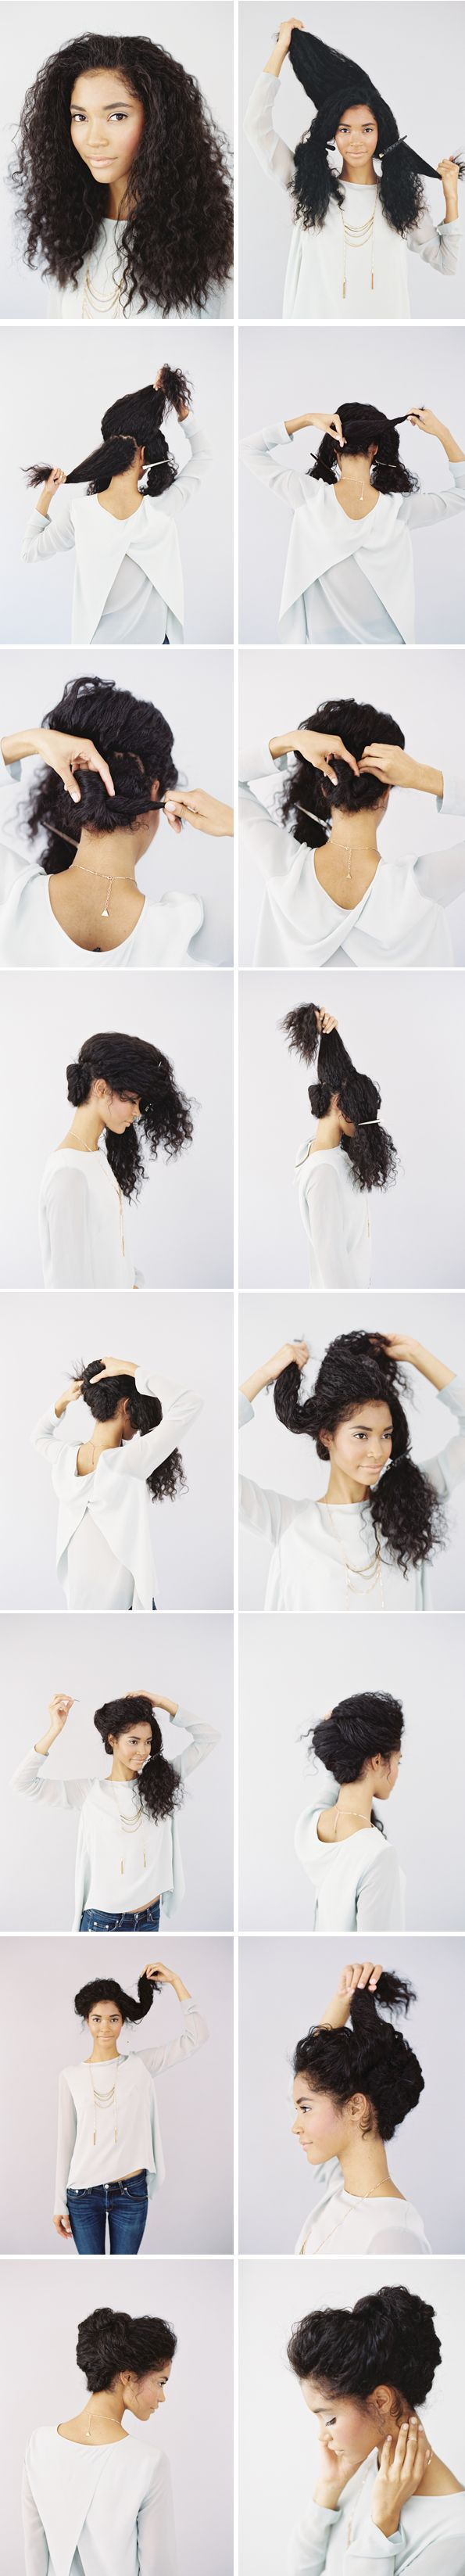 Pedir a Laura que te ayude a recrear ese top con la espalda abierta. Es una monada  Wedding Updo for Naturally Curly Hair